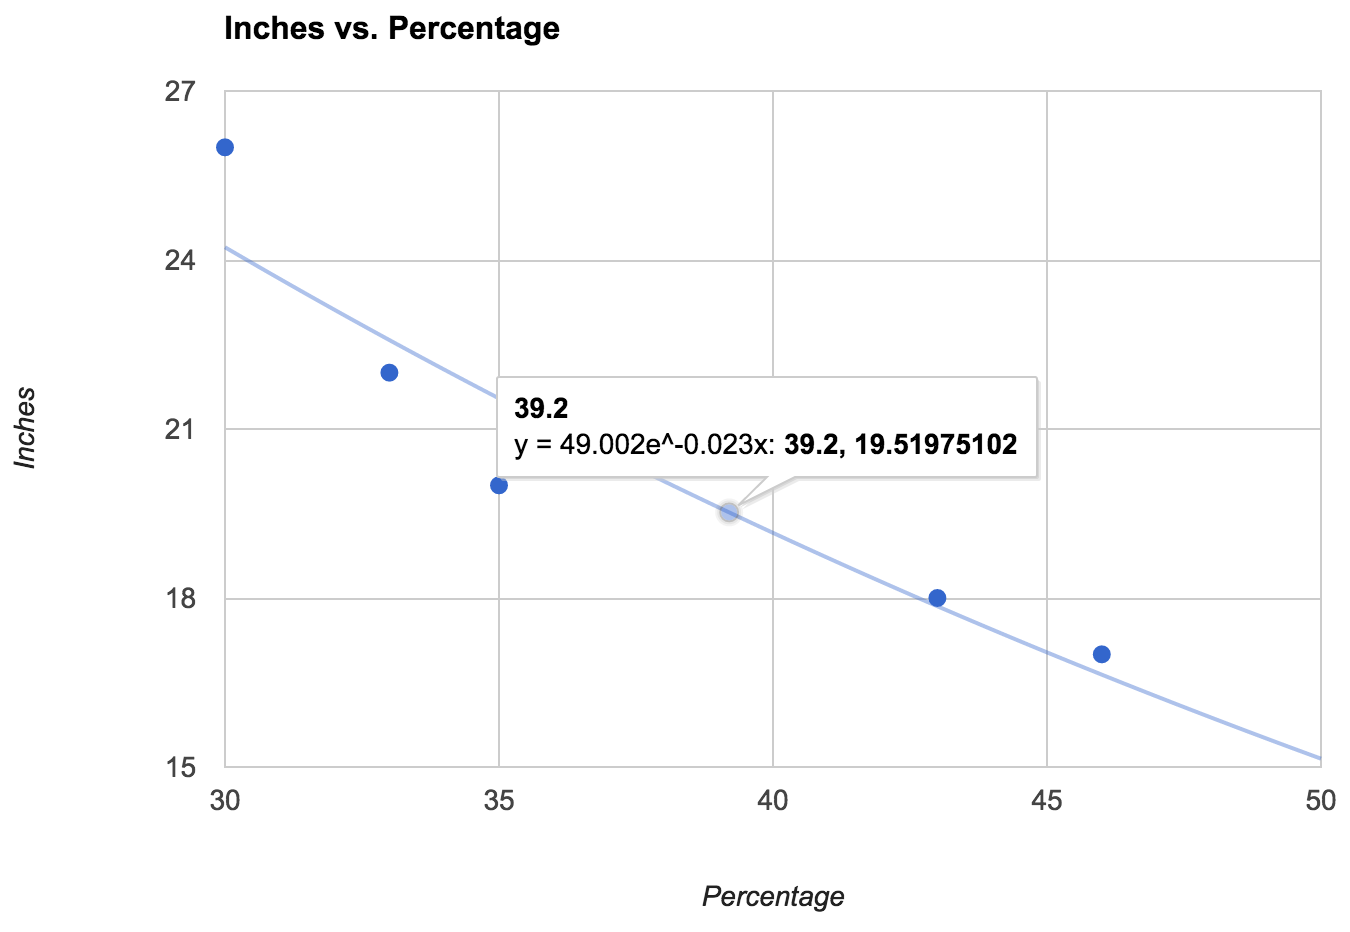 Inches versus Percentage